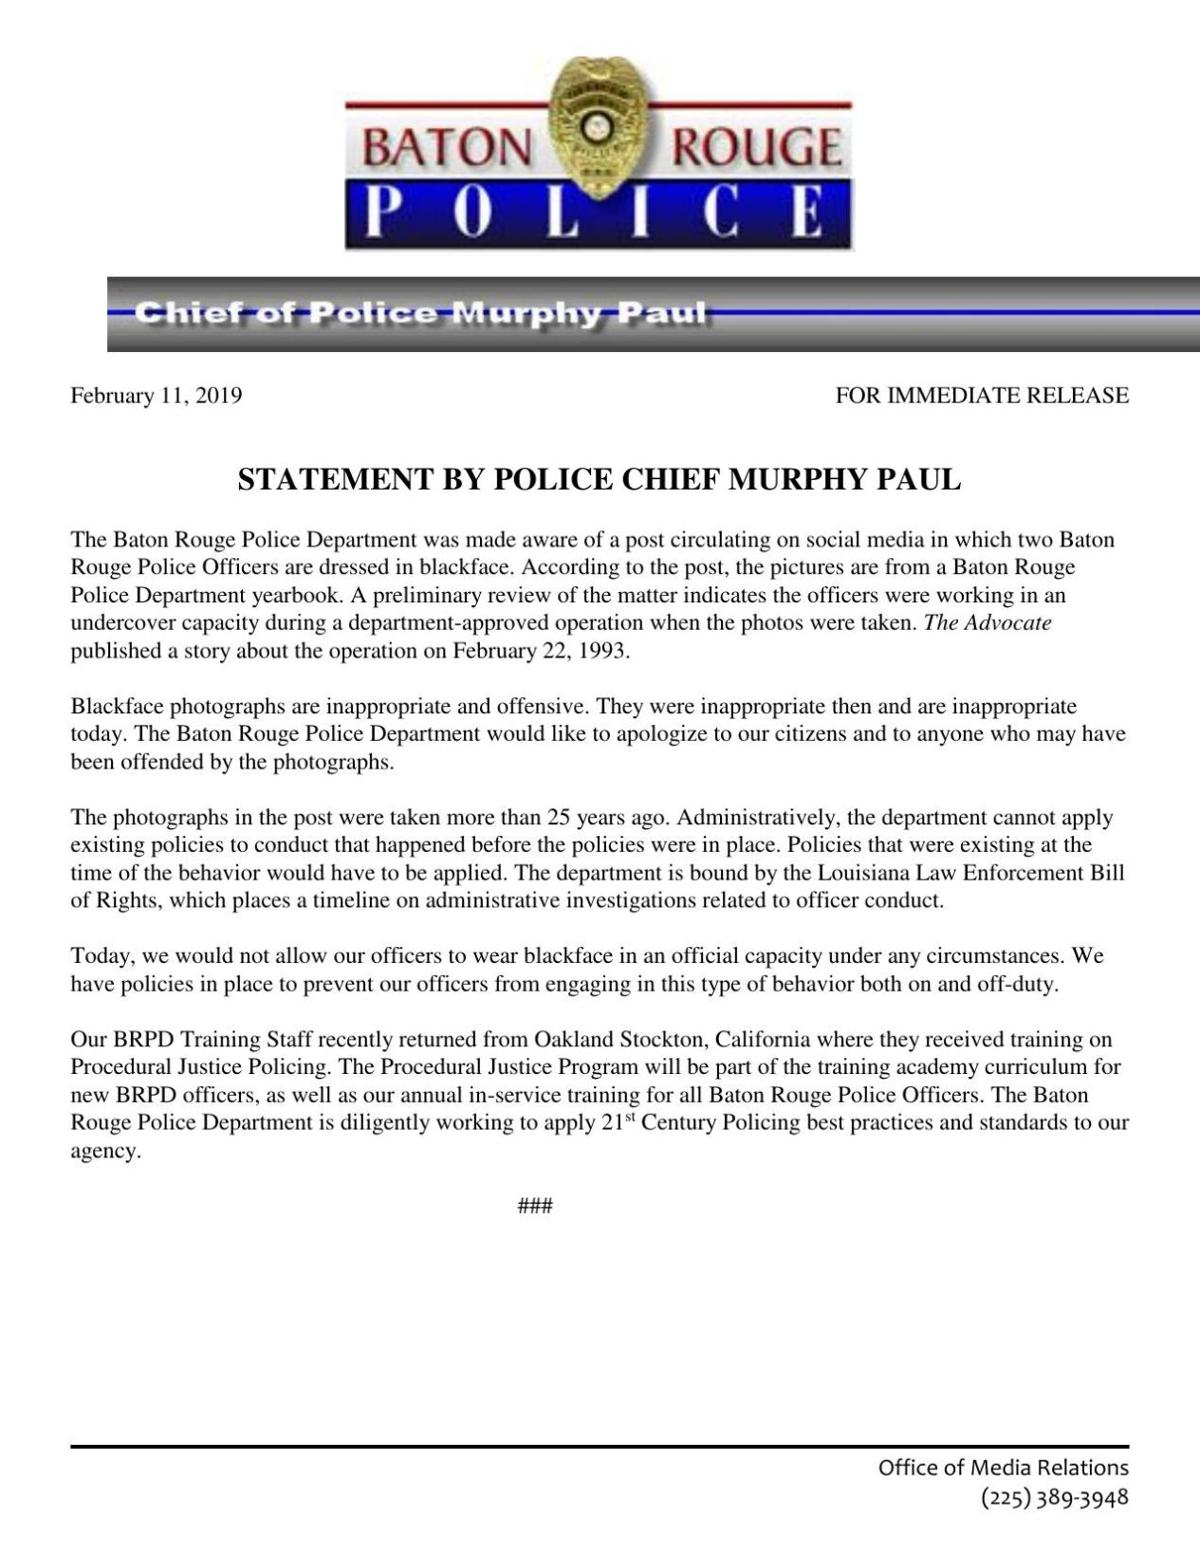 Full BRPD statement on 1993 blackface photo